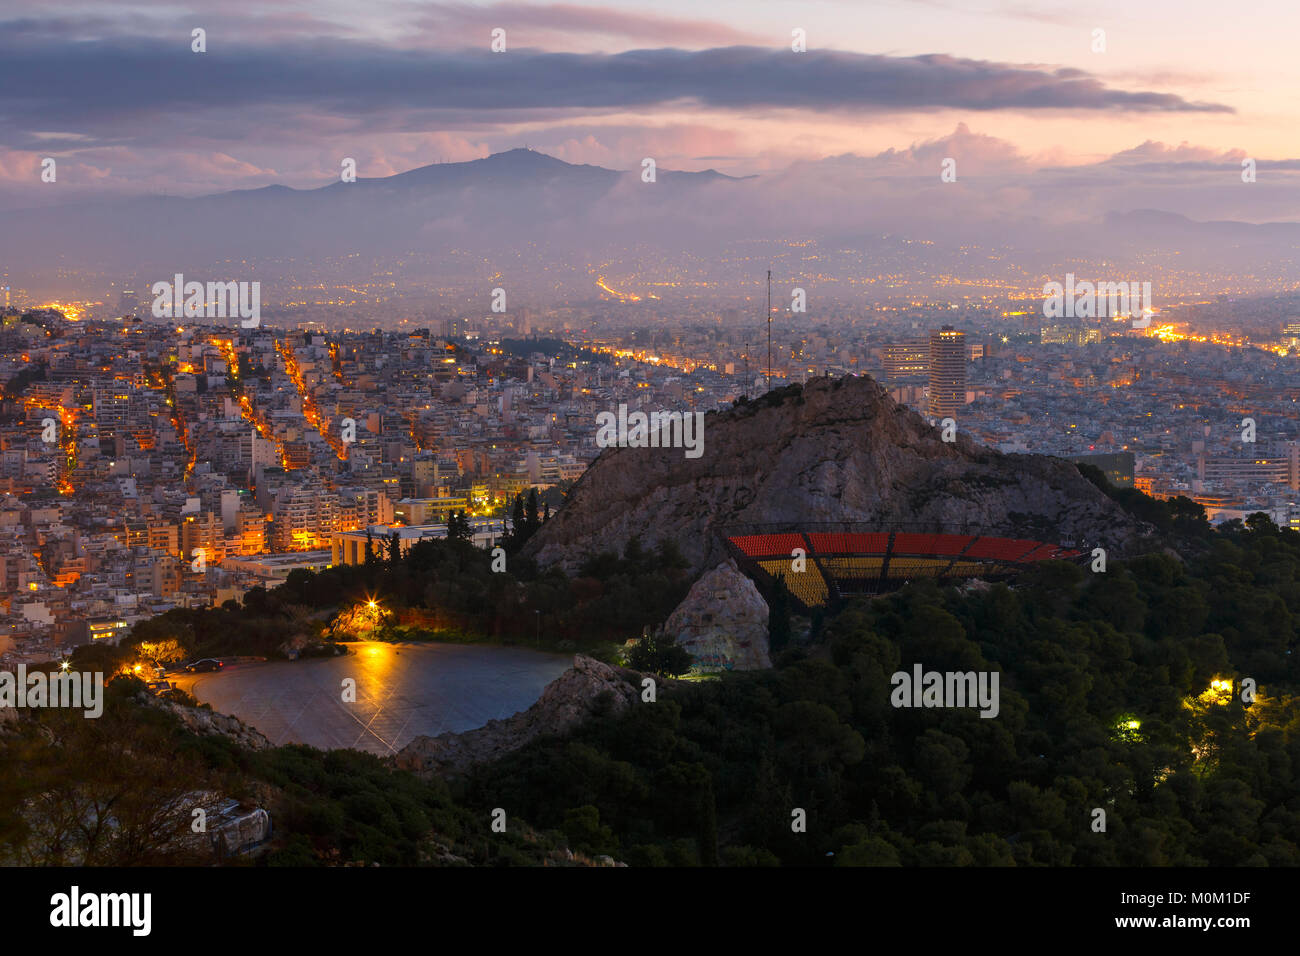 View of Athens from Lycabettus hill at dawn, Greece. - Stock Image